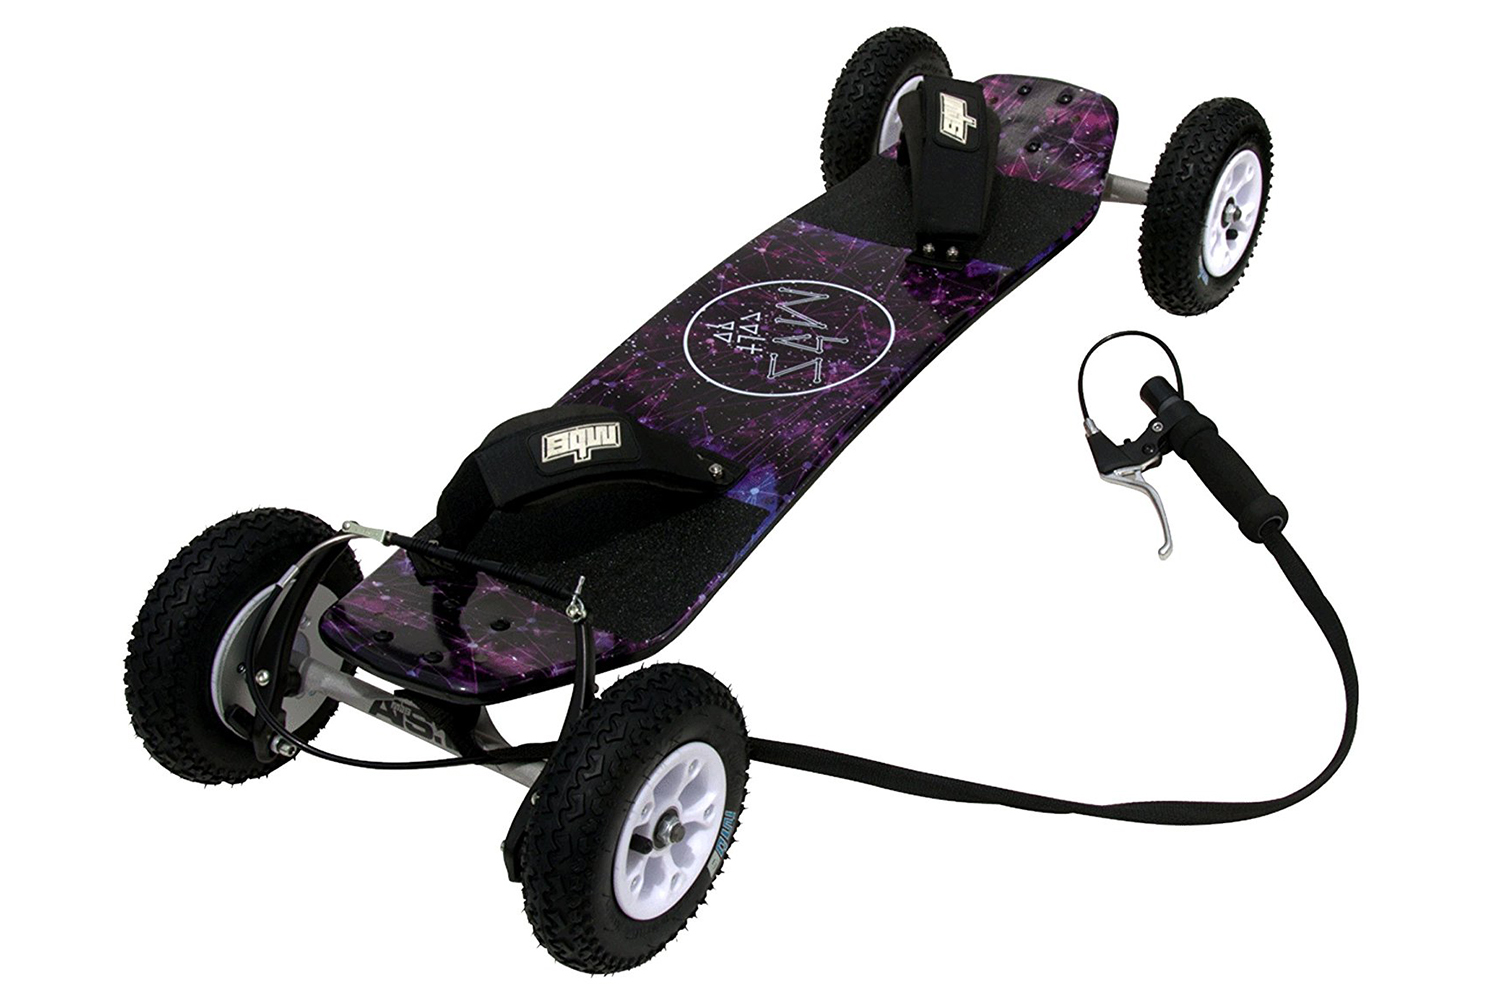 Mbs Colt 90x Mountainboard Electric Skateboard Gearscoot